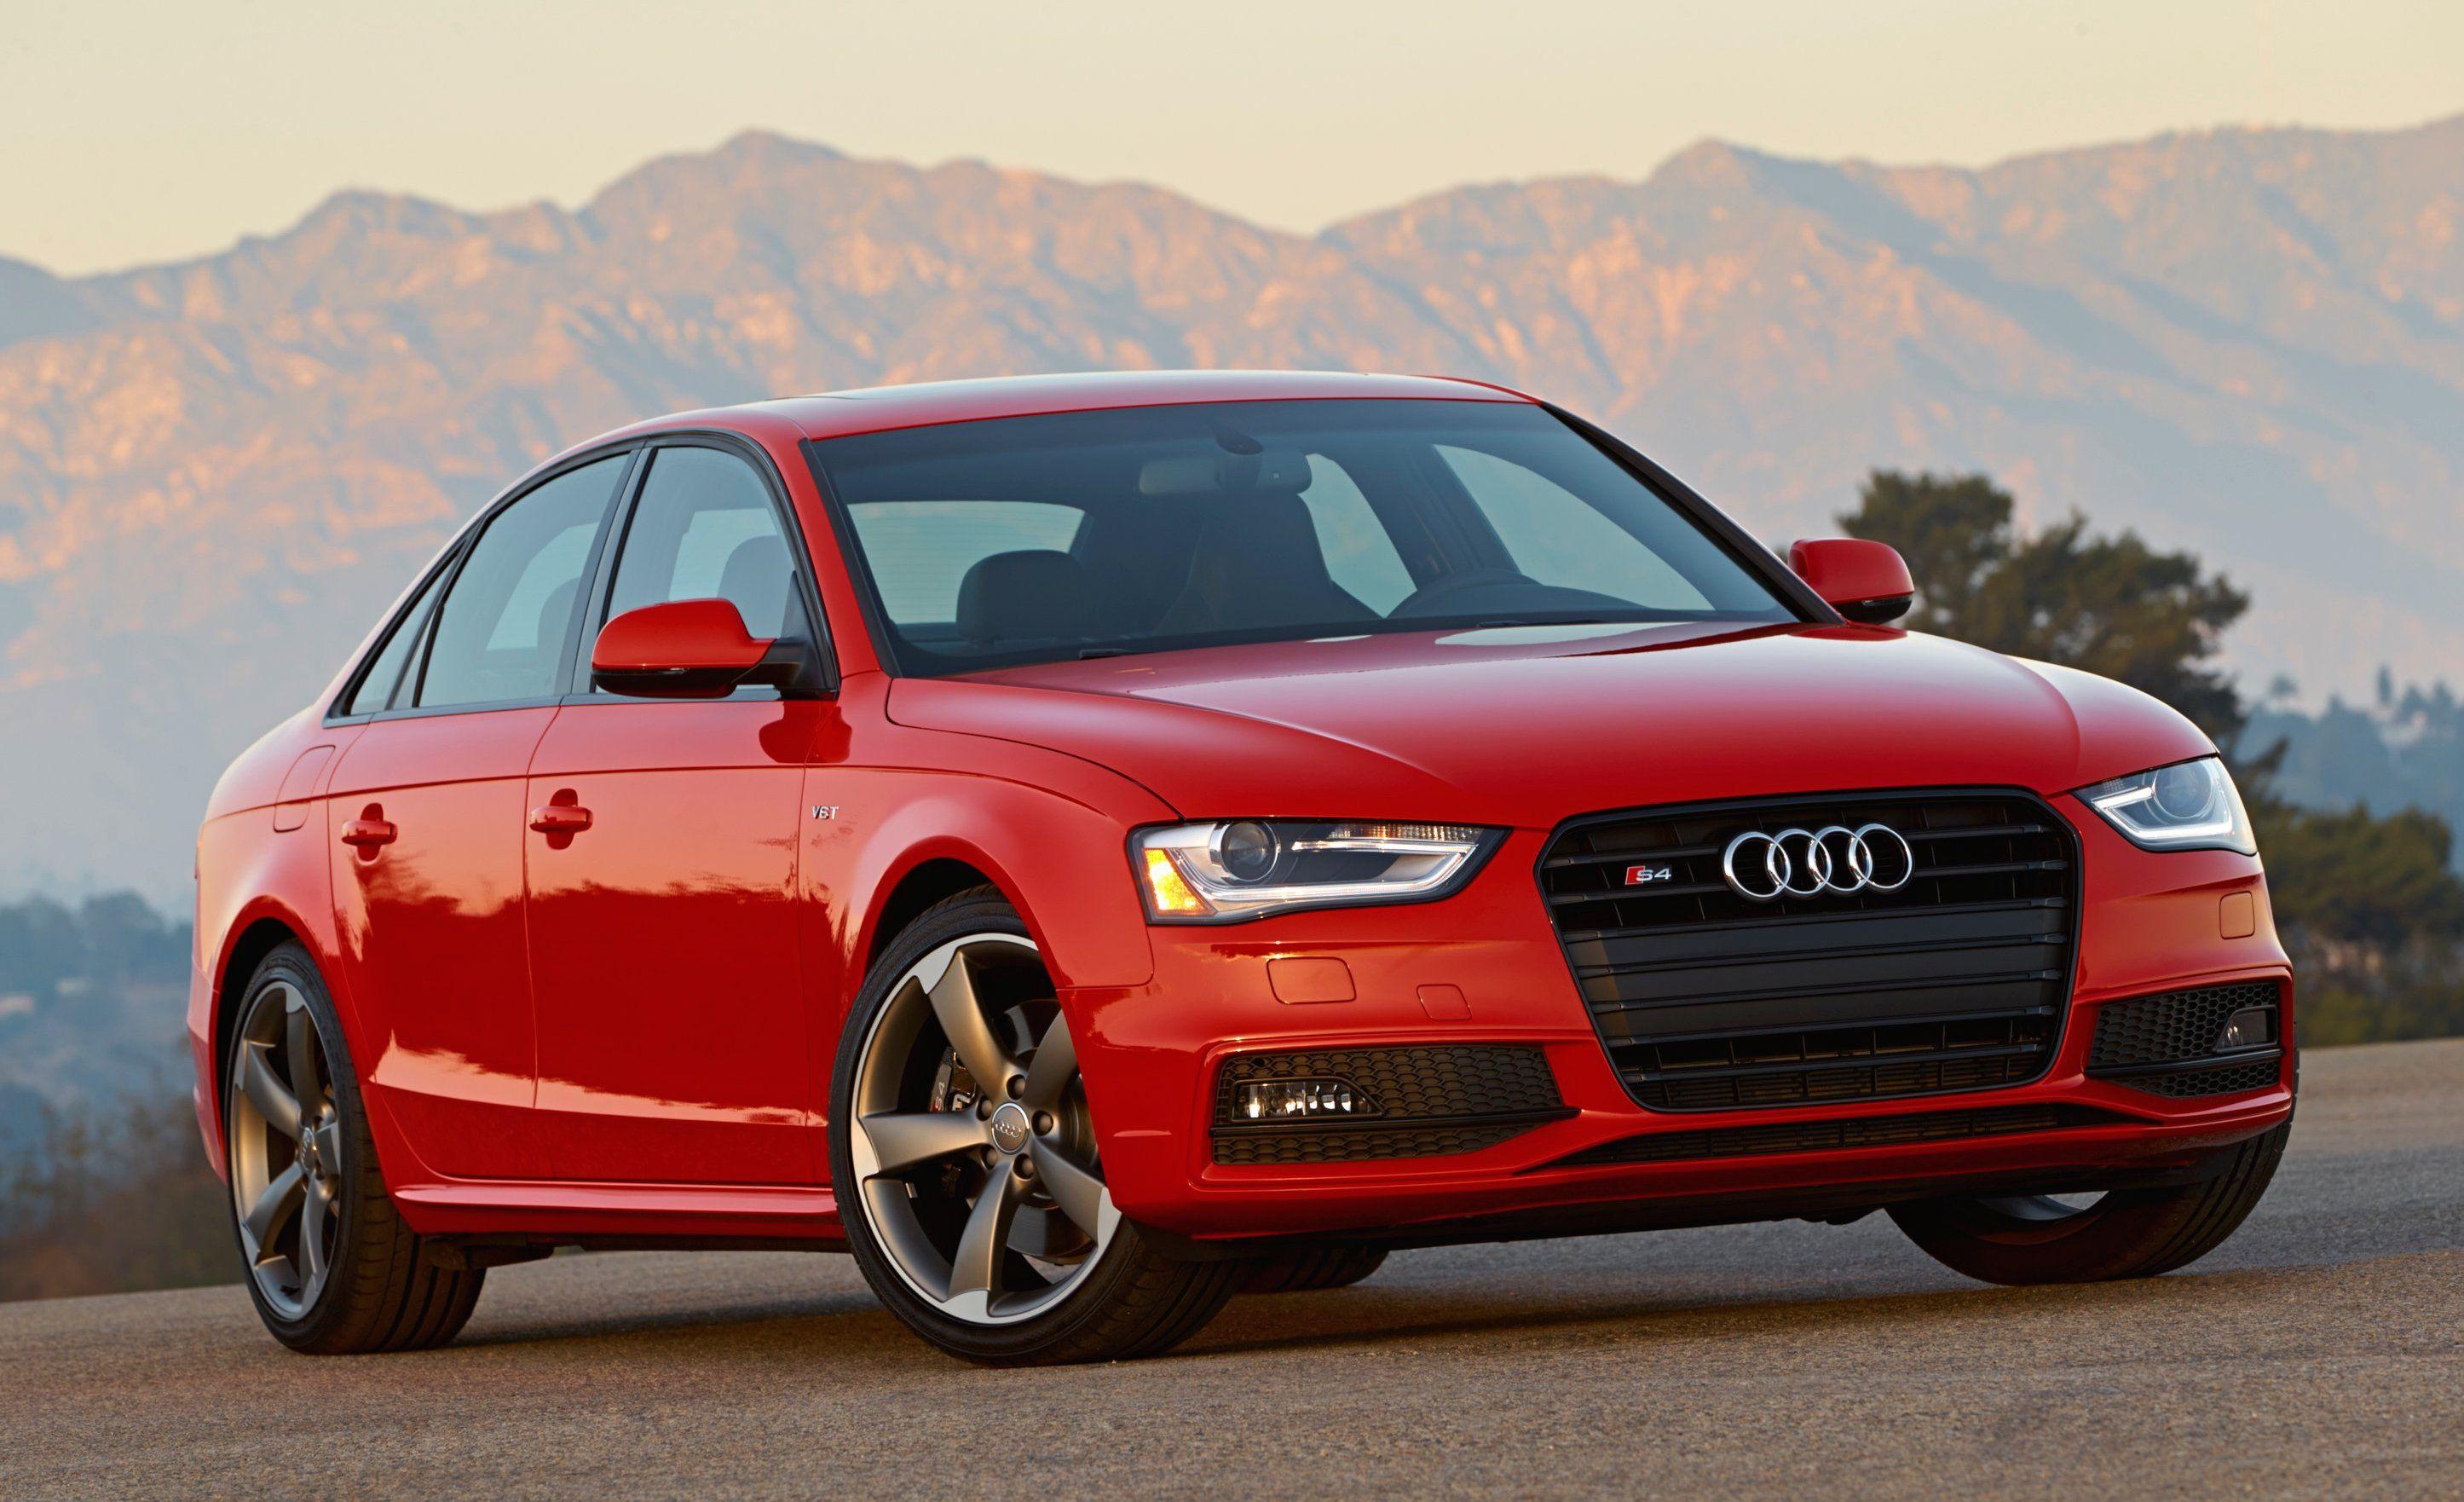 Audi S4 wallpapers, Vehicles, HQ Audi S4 pictures